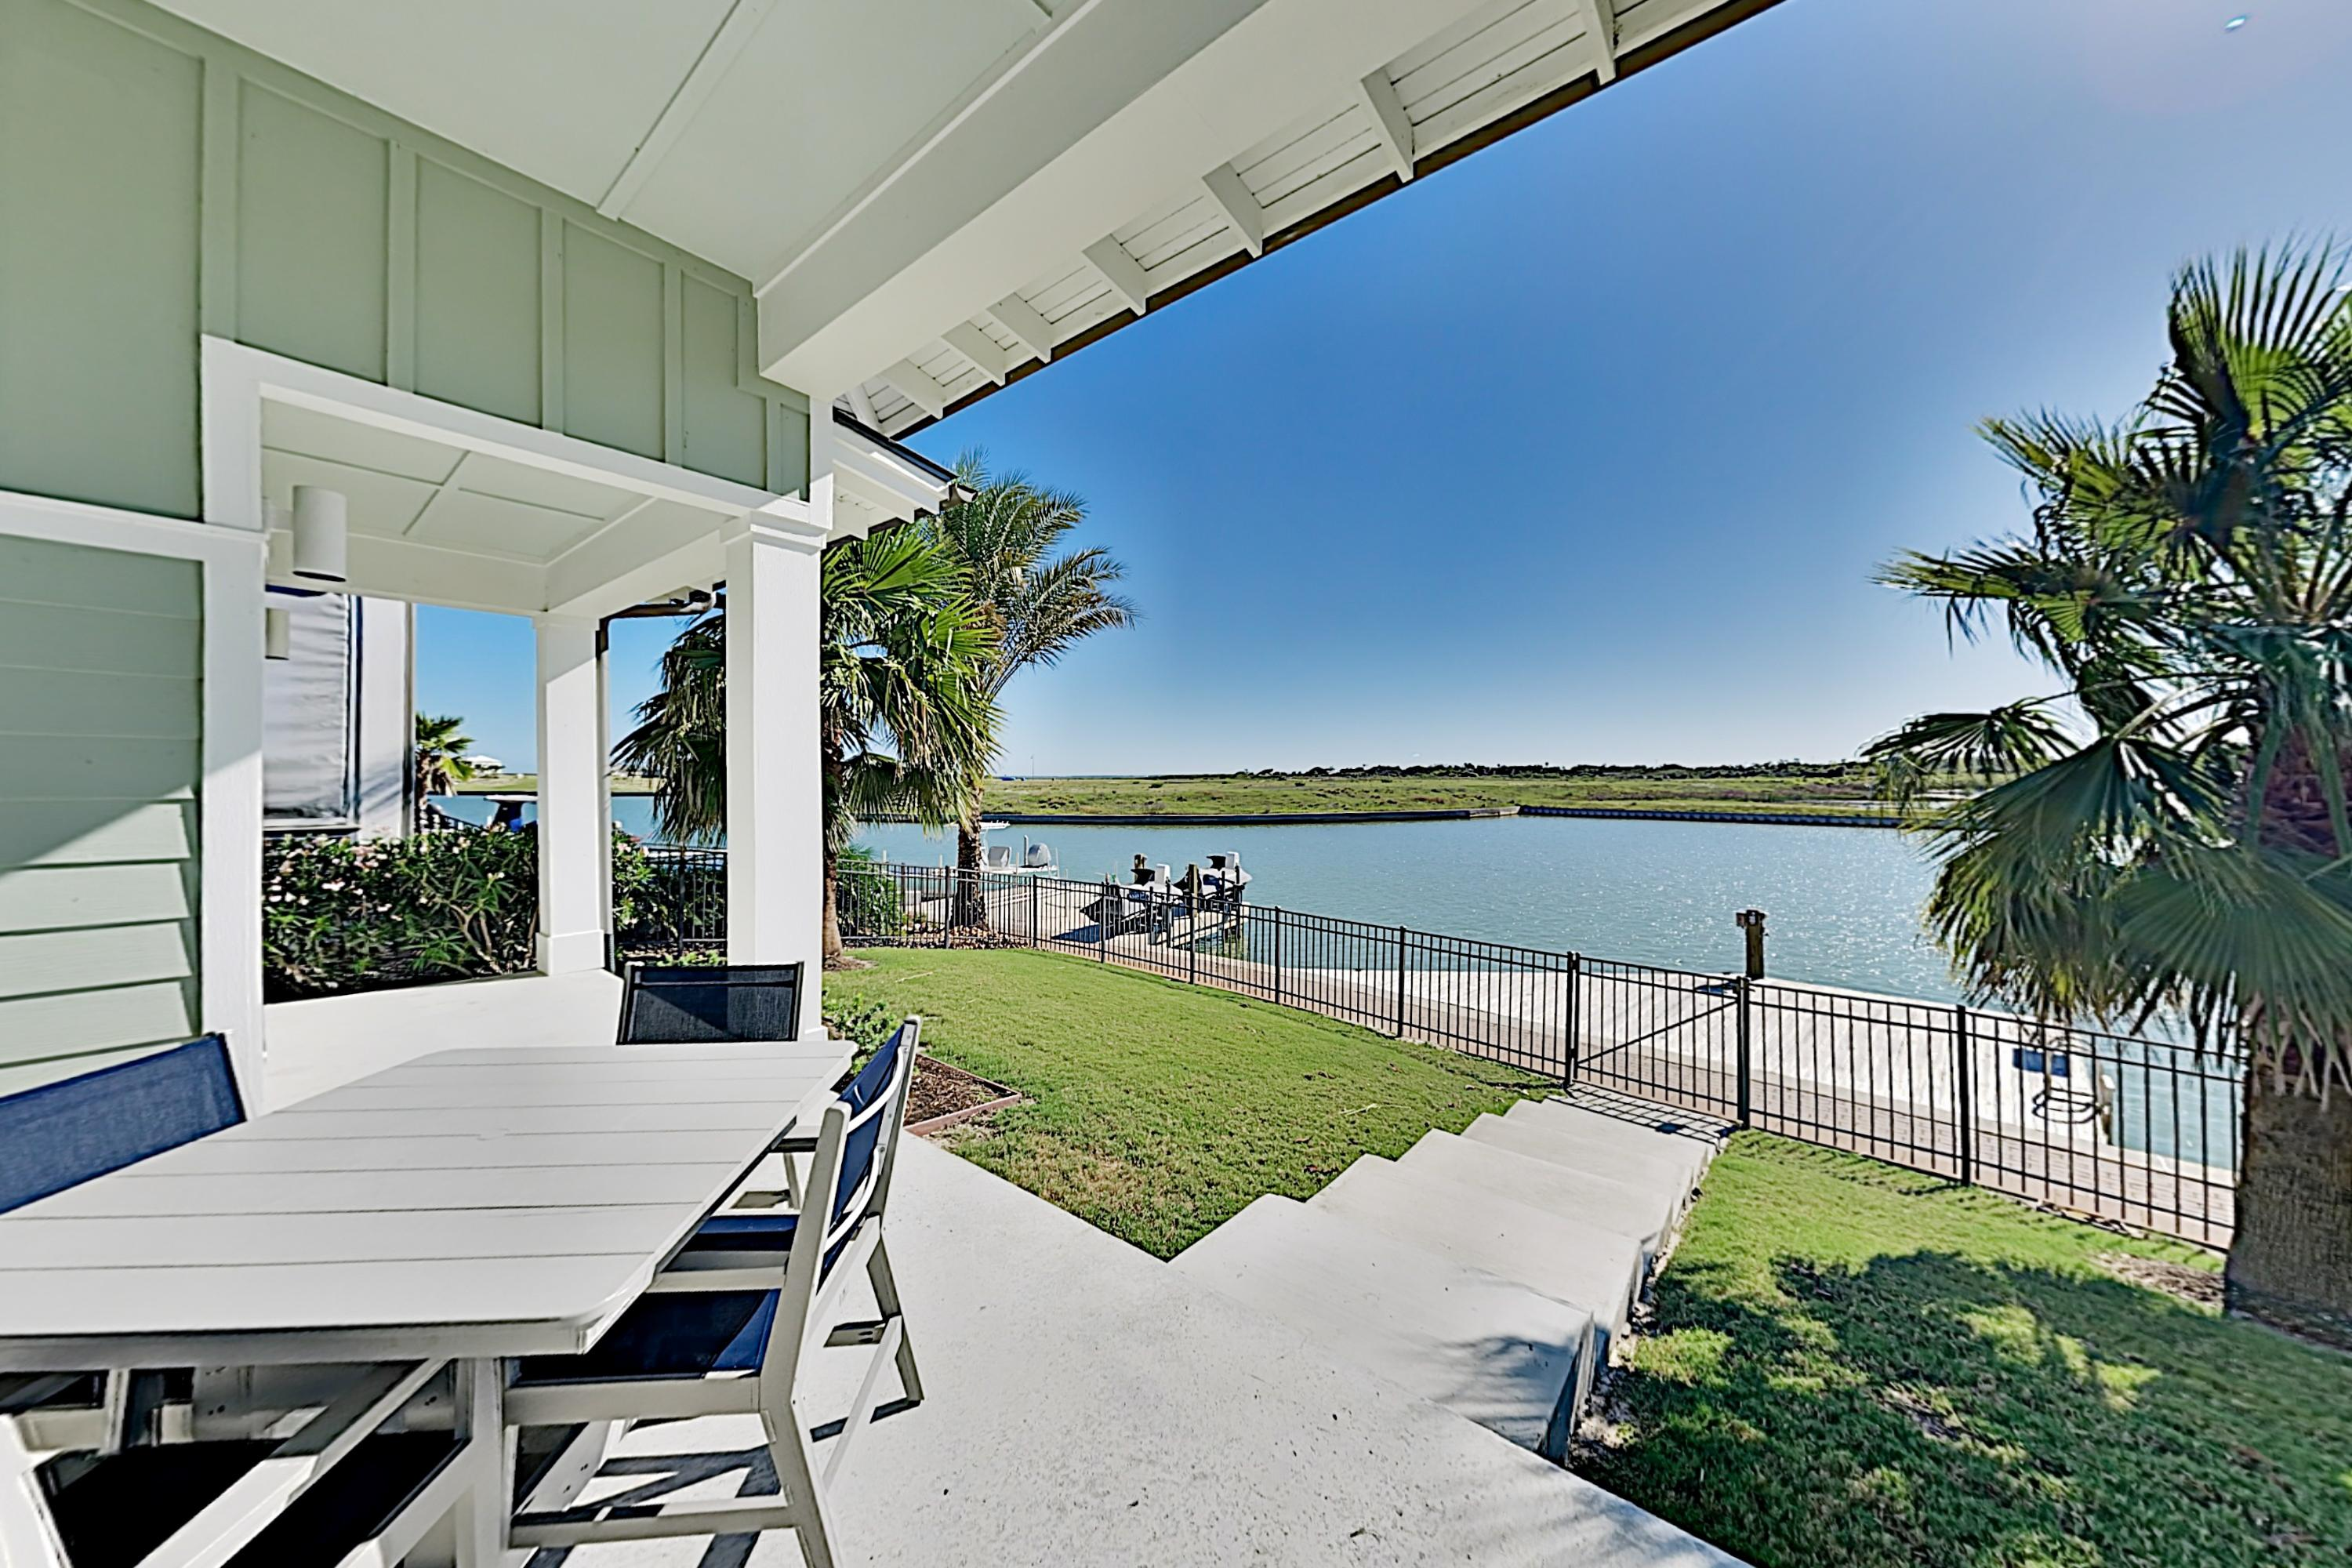 Property Image 1 - Upscale Home in The Reserve at St. Charles Bay!